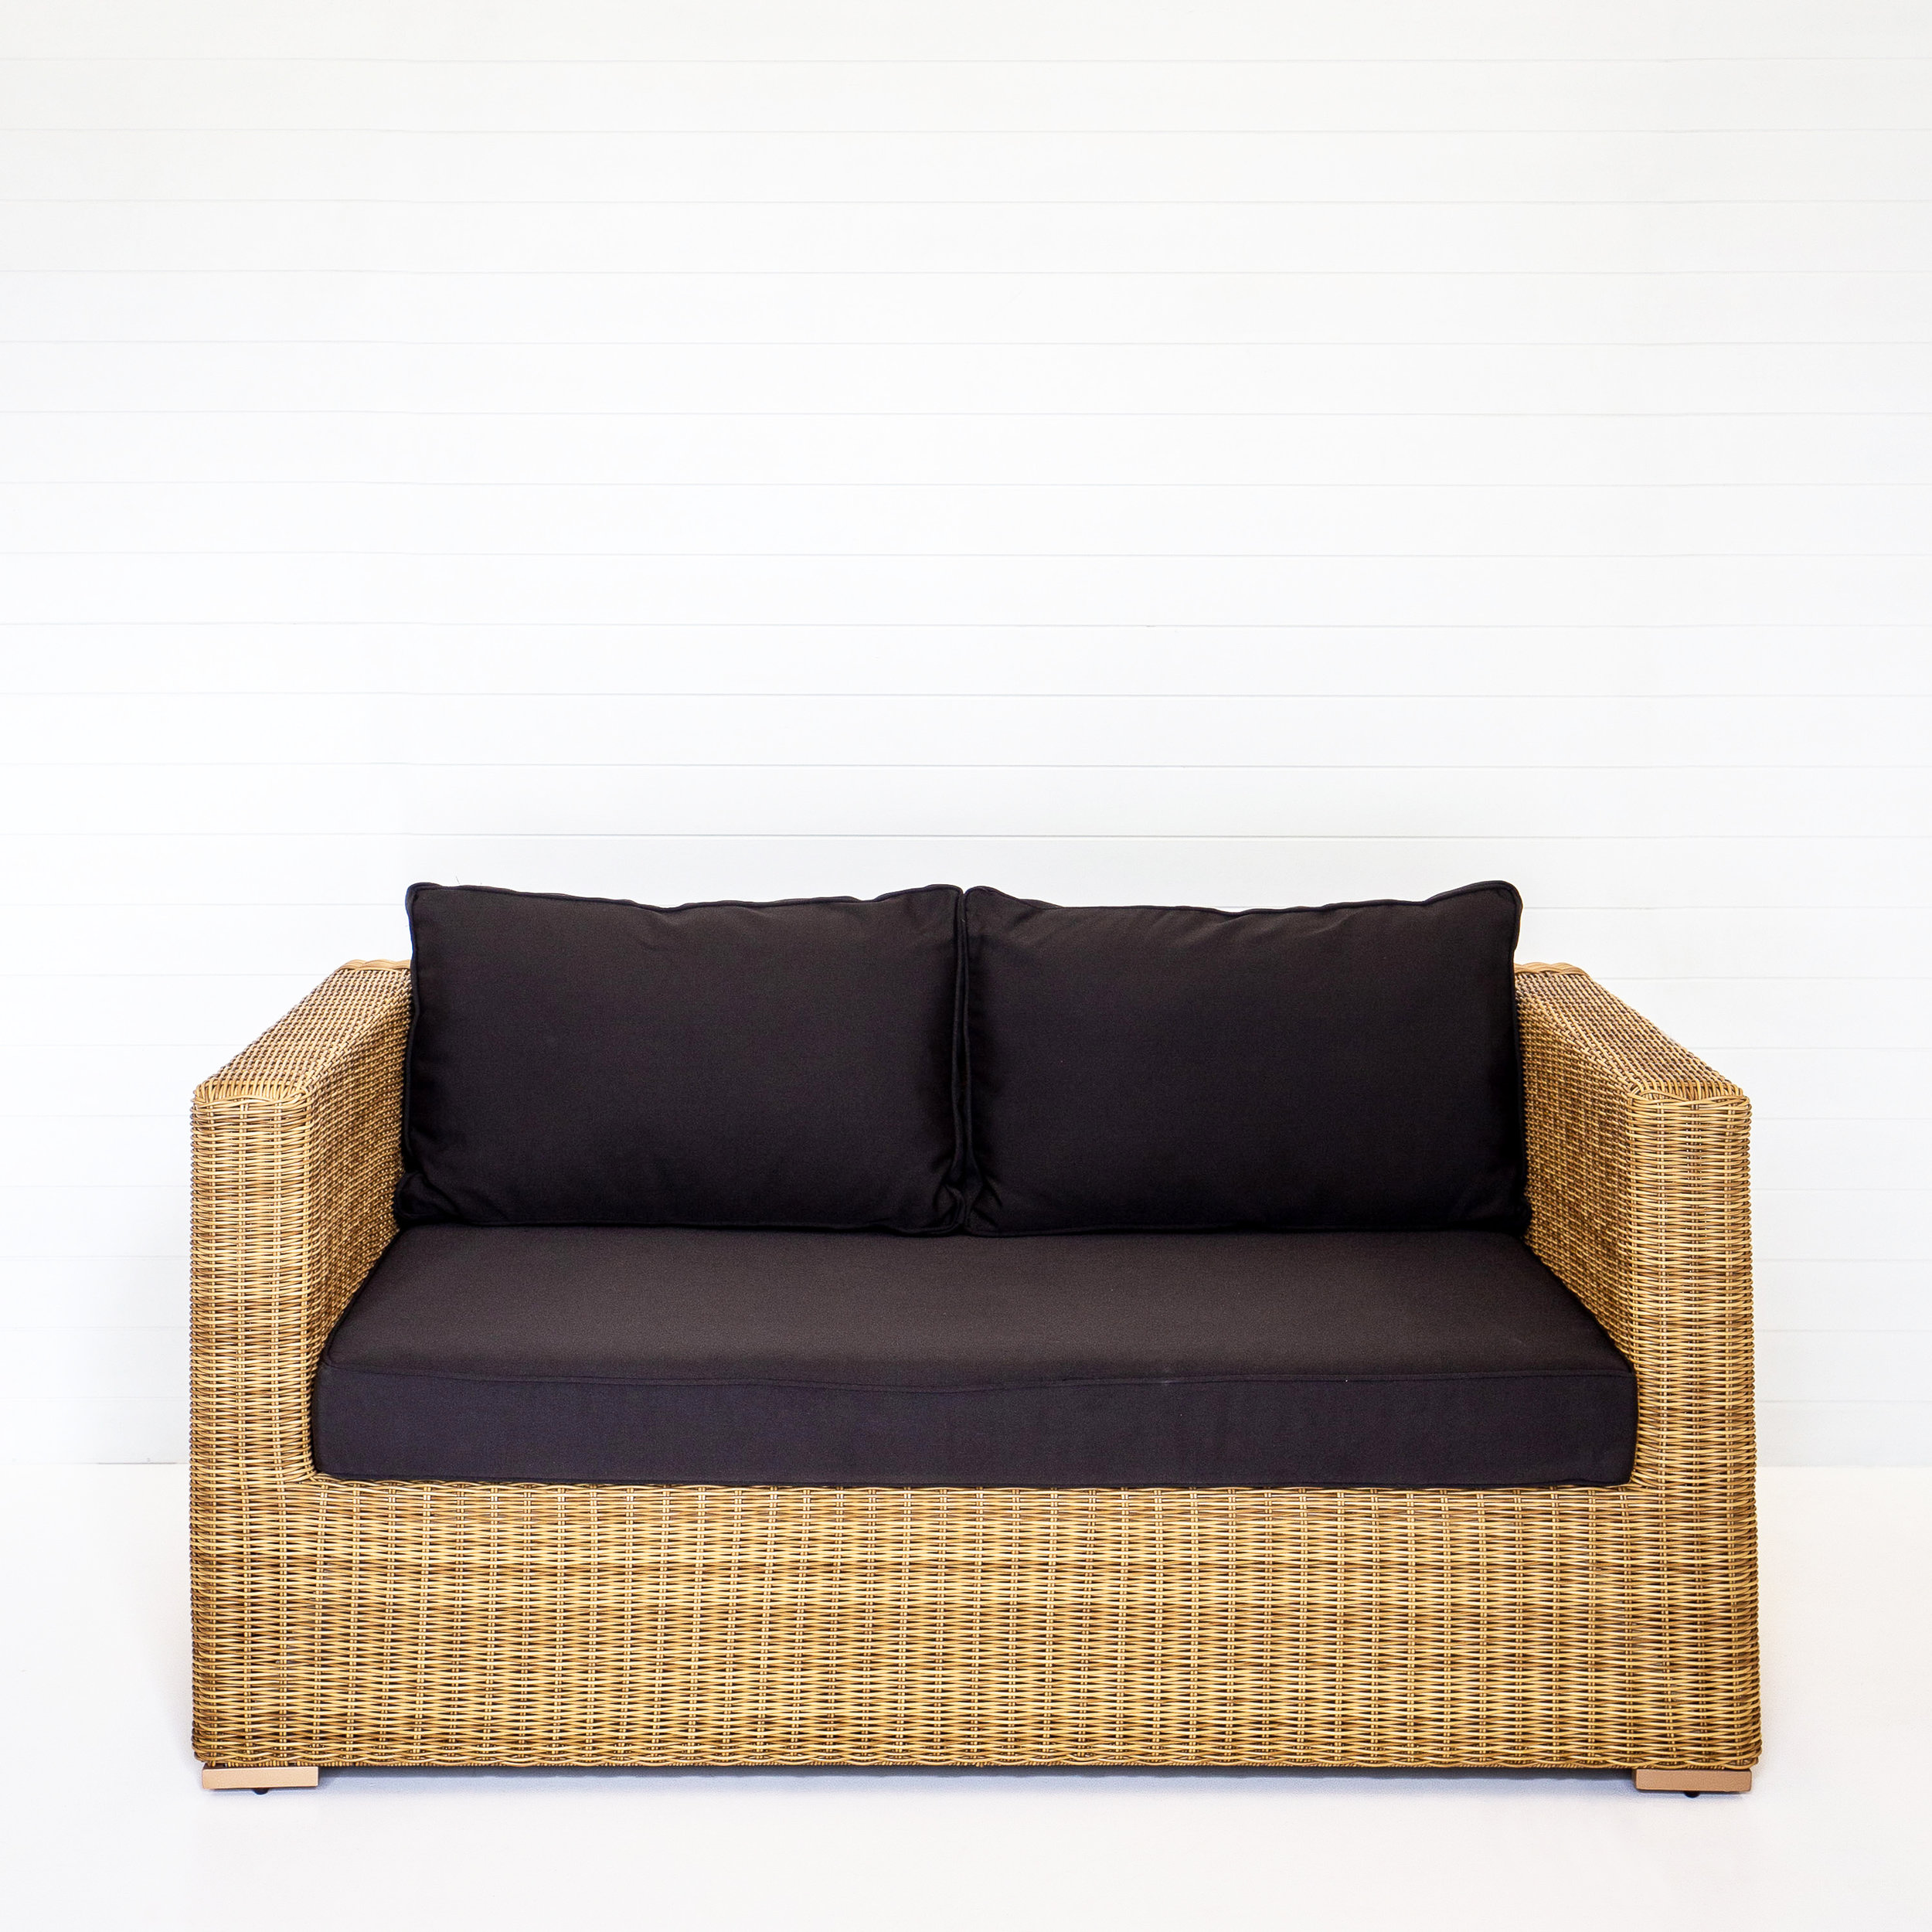 Dune Two Seater Sofa (With-Arms) With Black Cushions